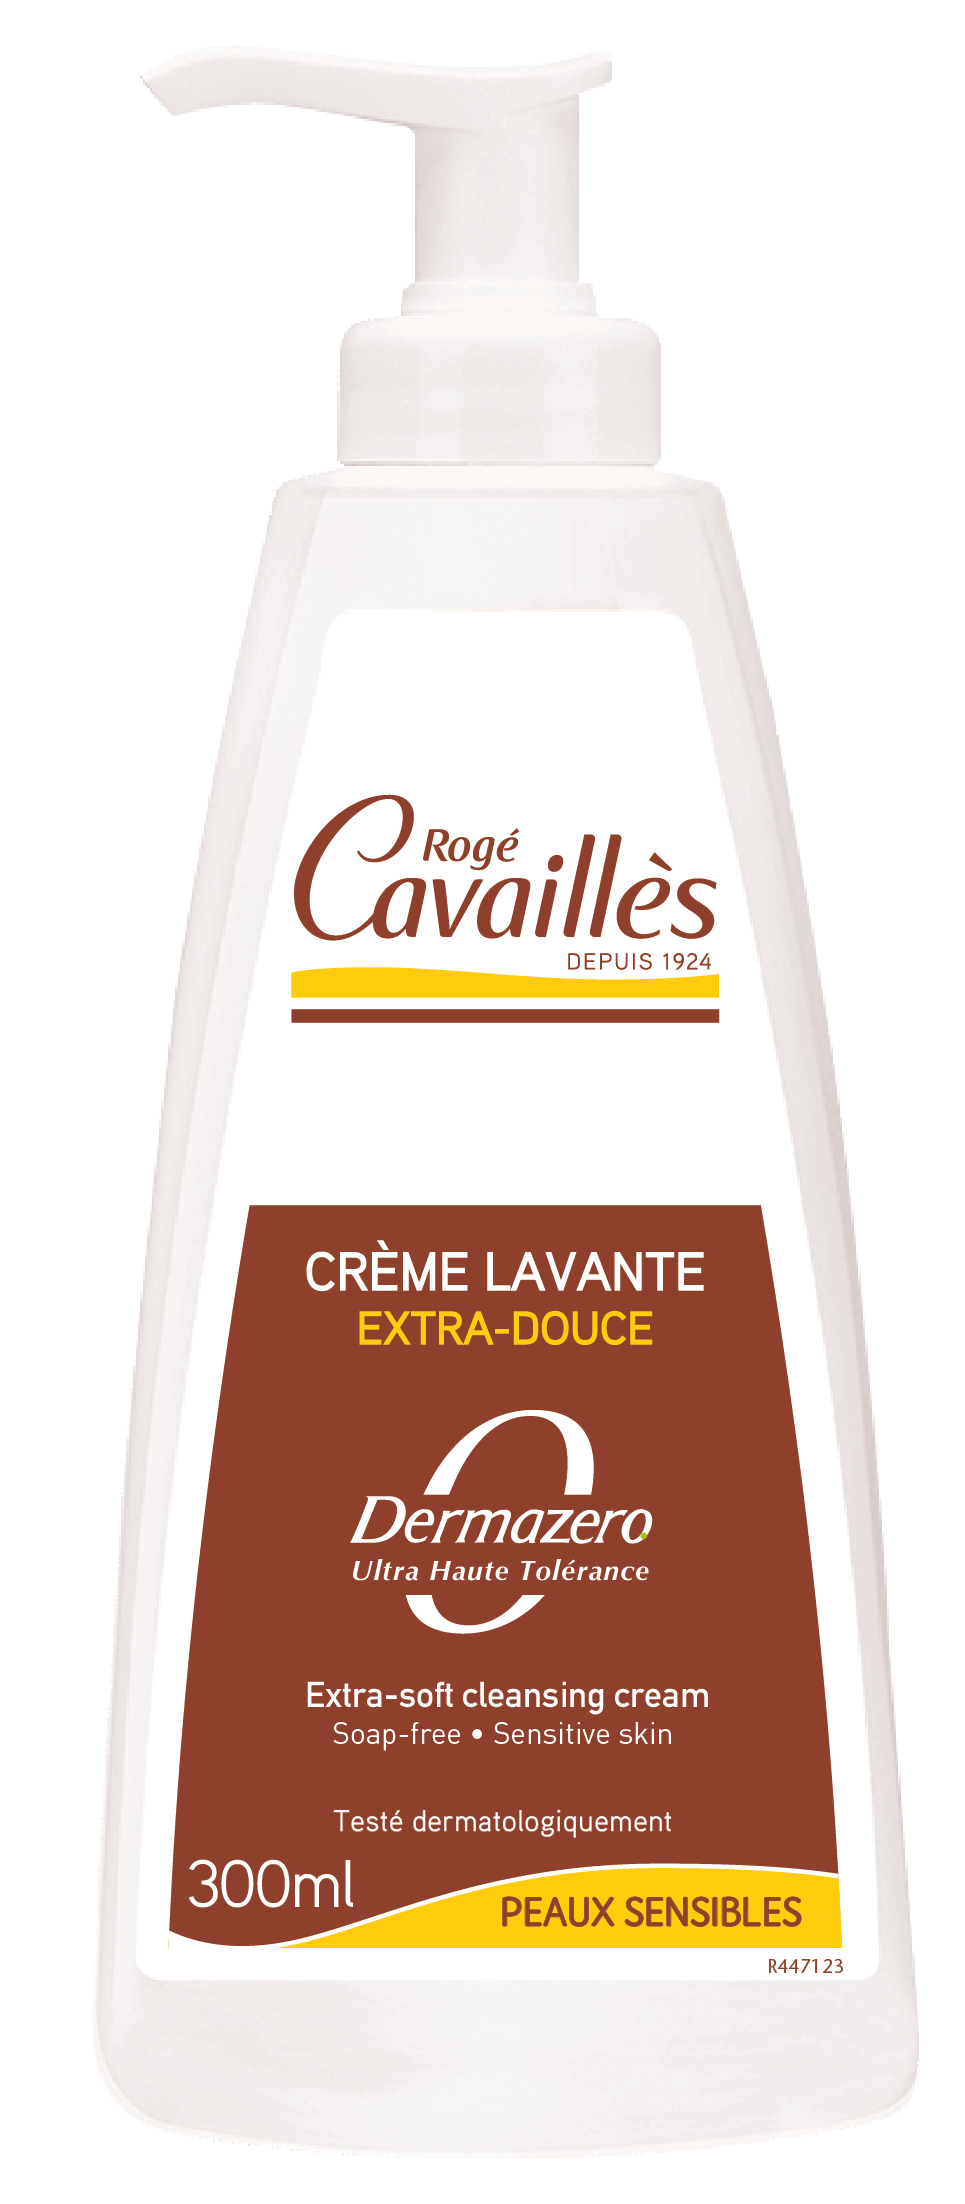 Creme Lavante Extra Douce 300 Ml